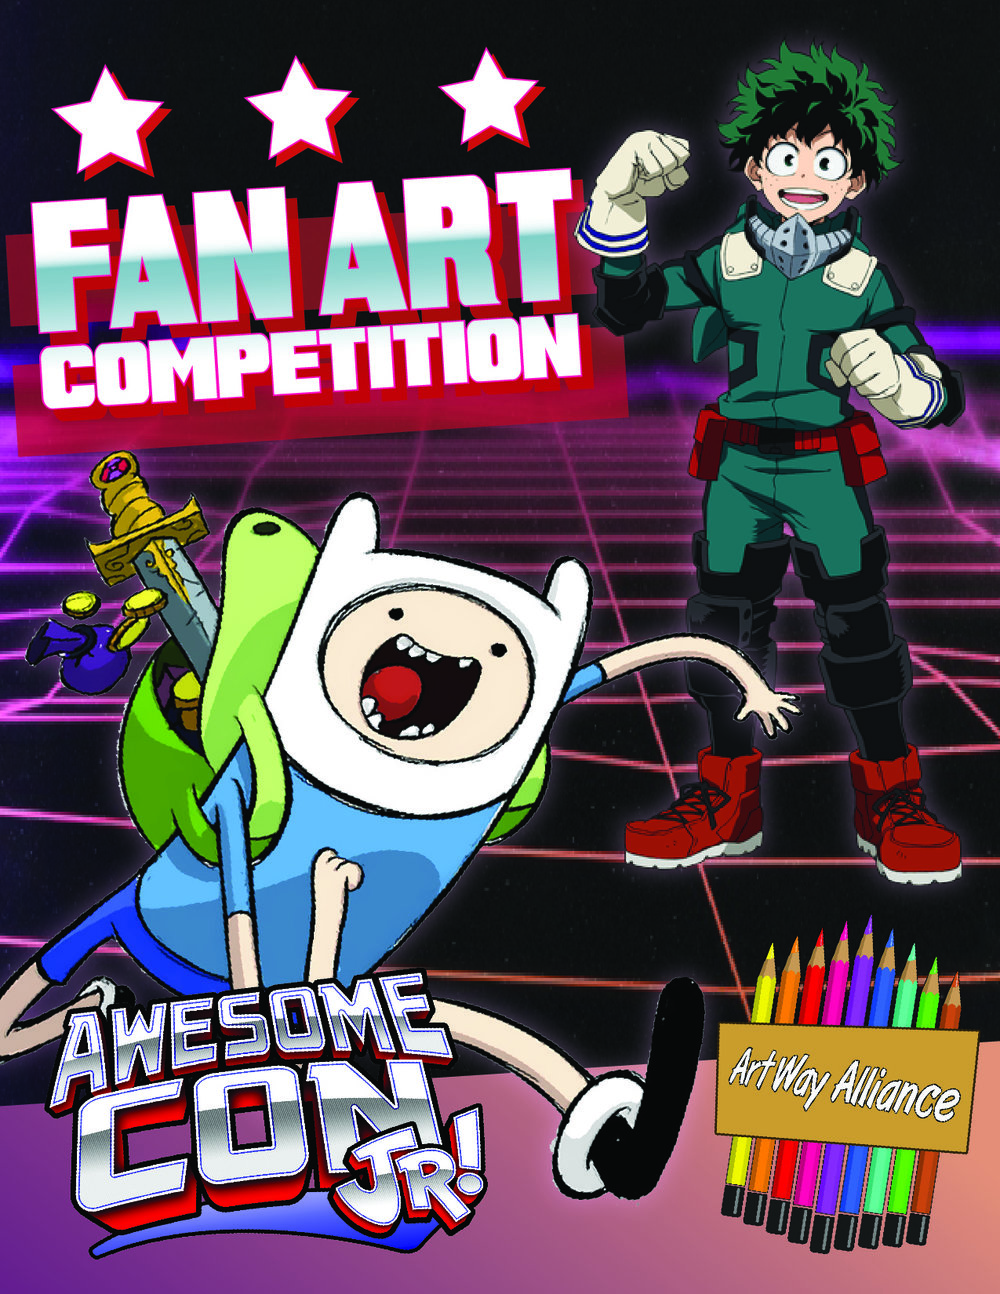 AwesomeCon Fanart comp-01.jpg